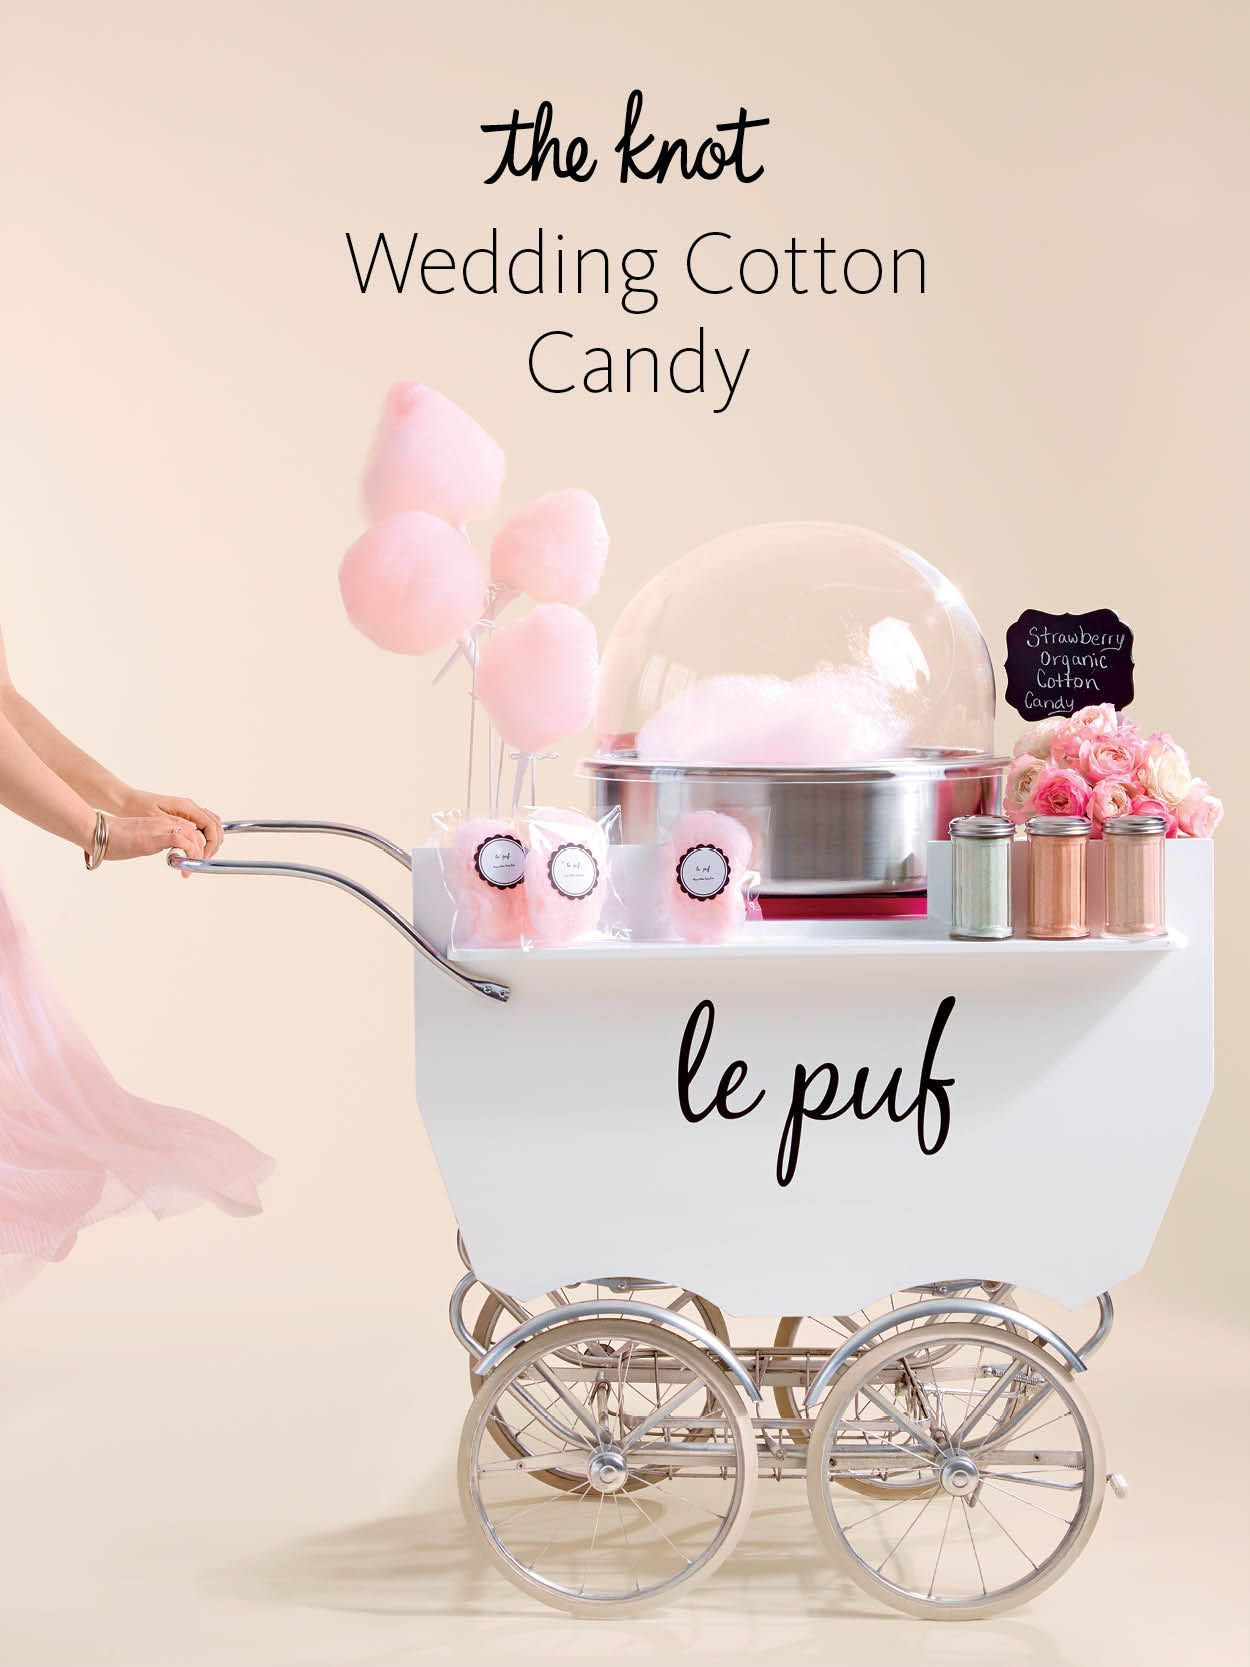 Genius ways to serve cotton candy at your wedding, plus more ...